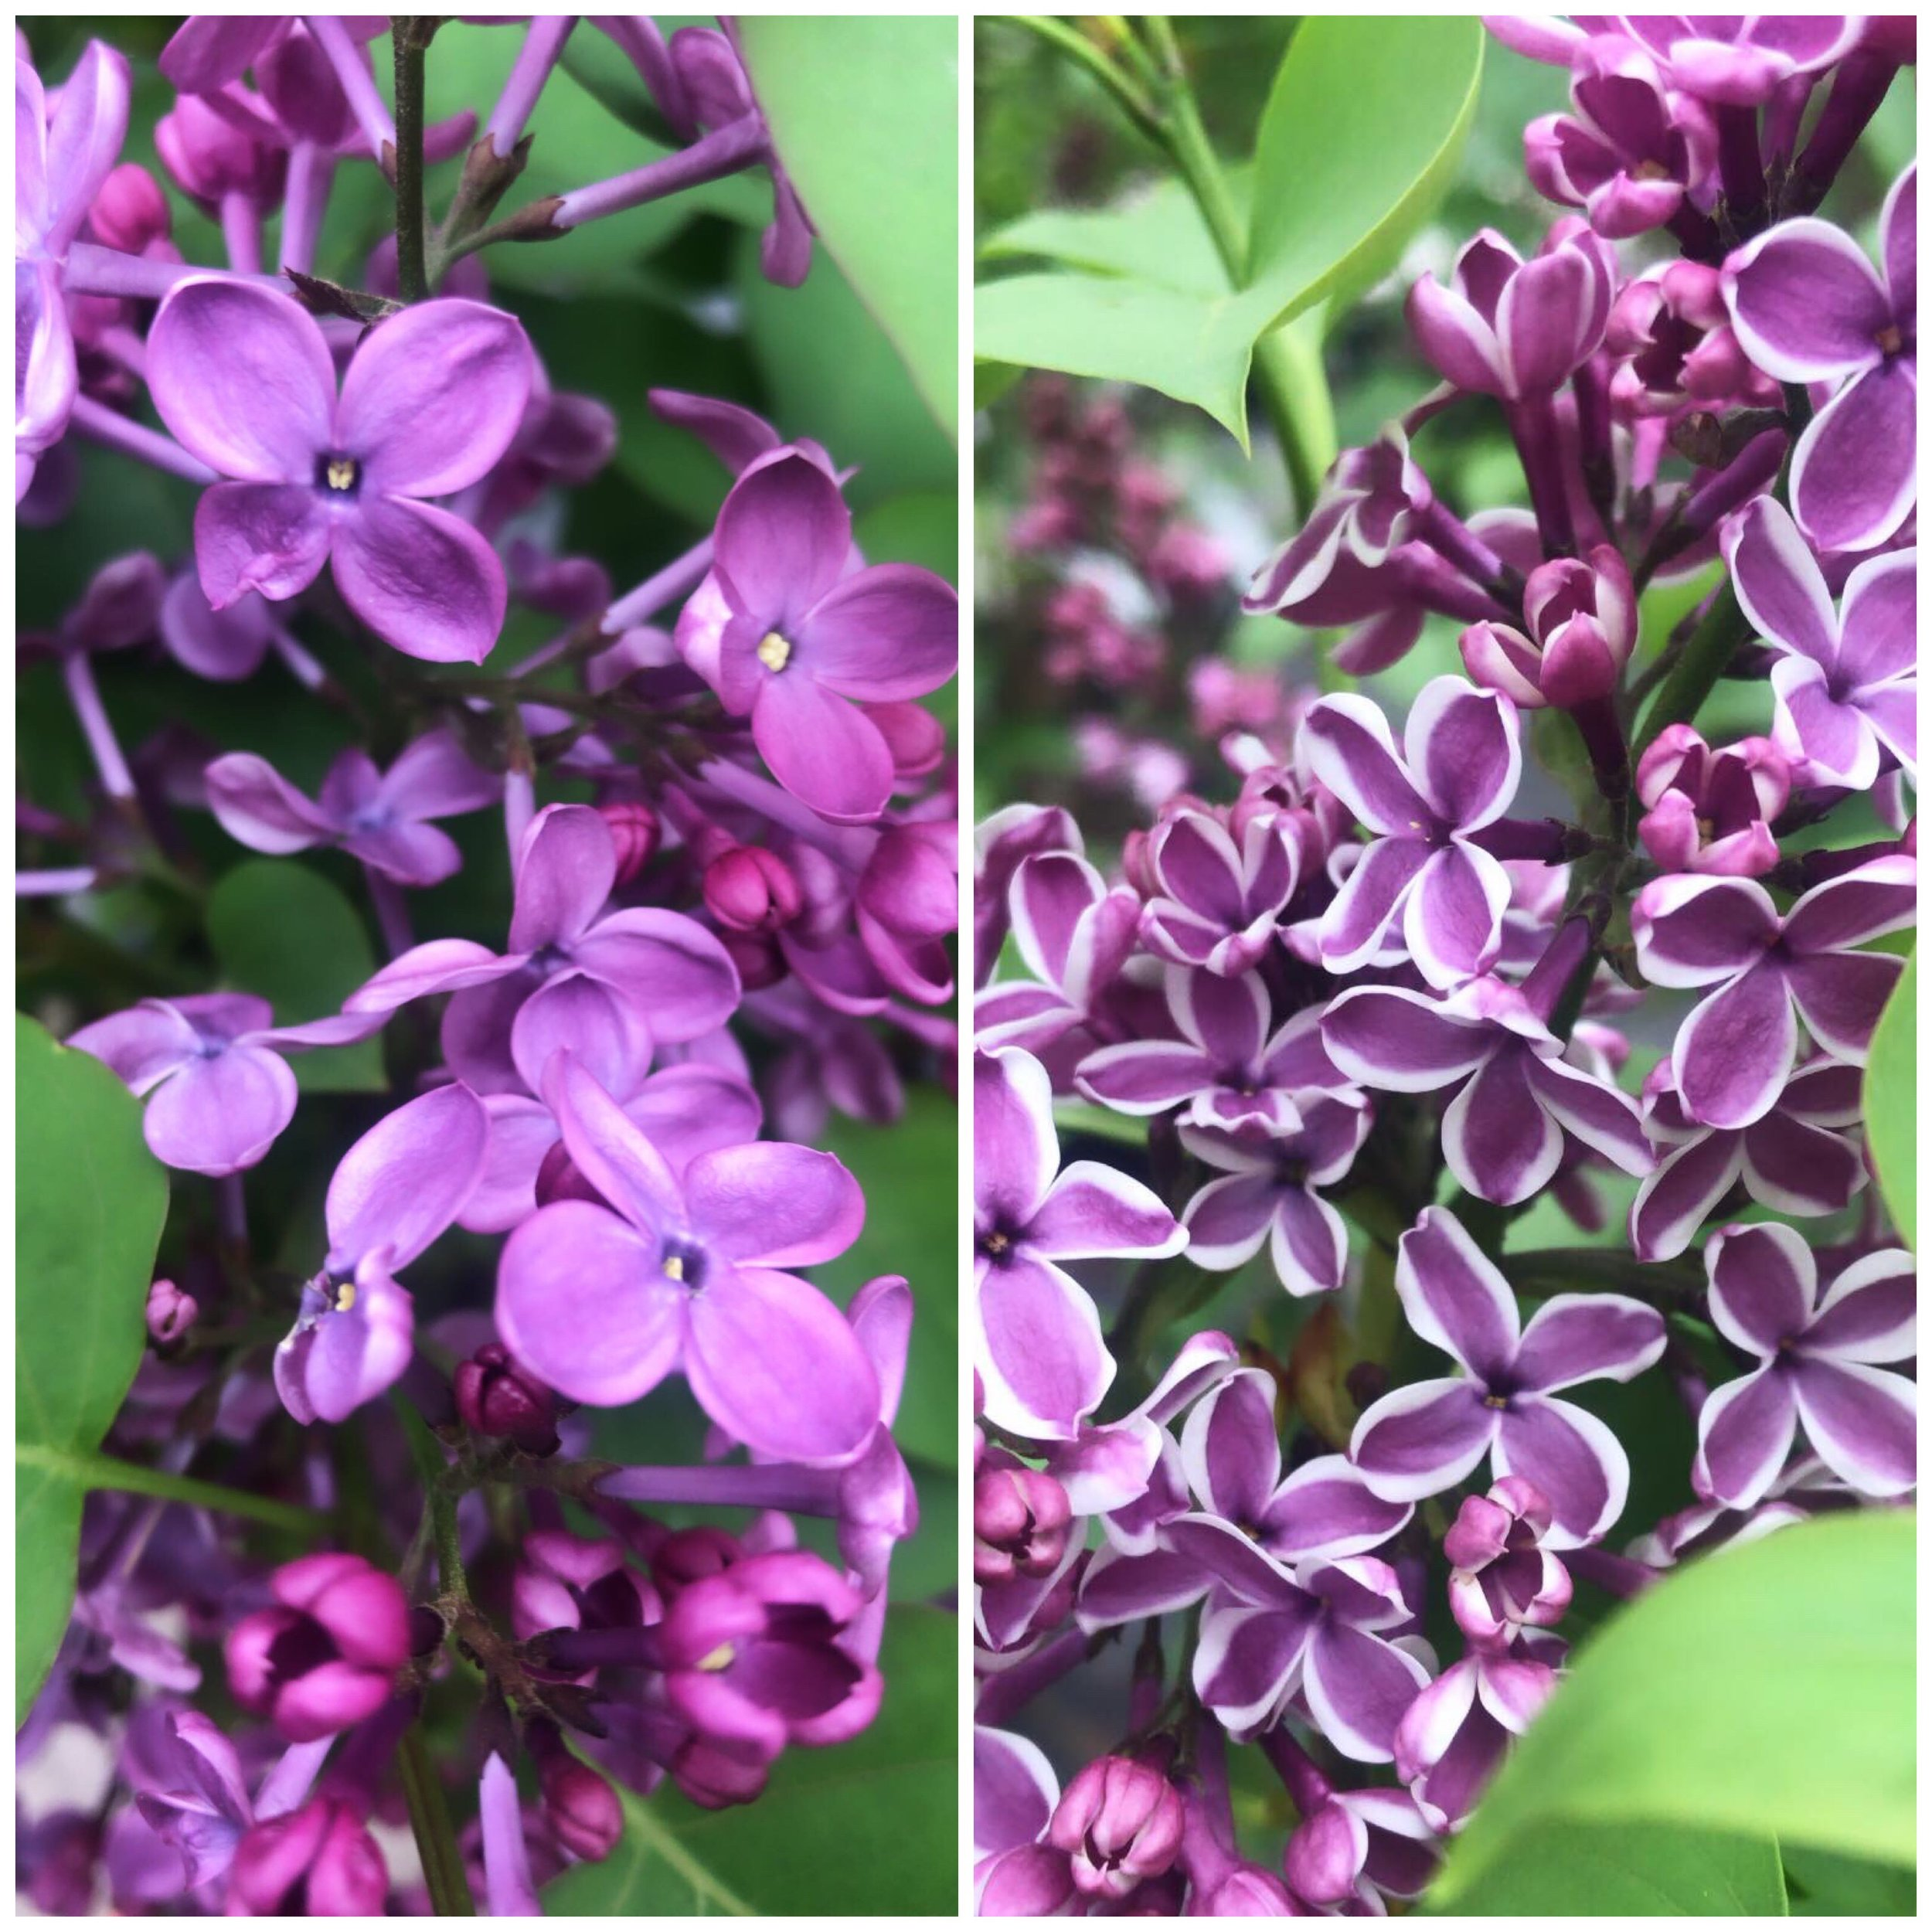 Lilacs are blooming! And they smell so good! Want to add some fragrance to your landscape? Here's an article to get you started  HERE